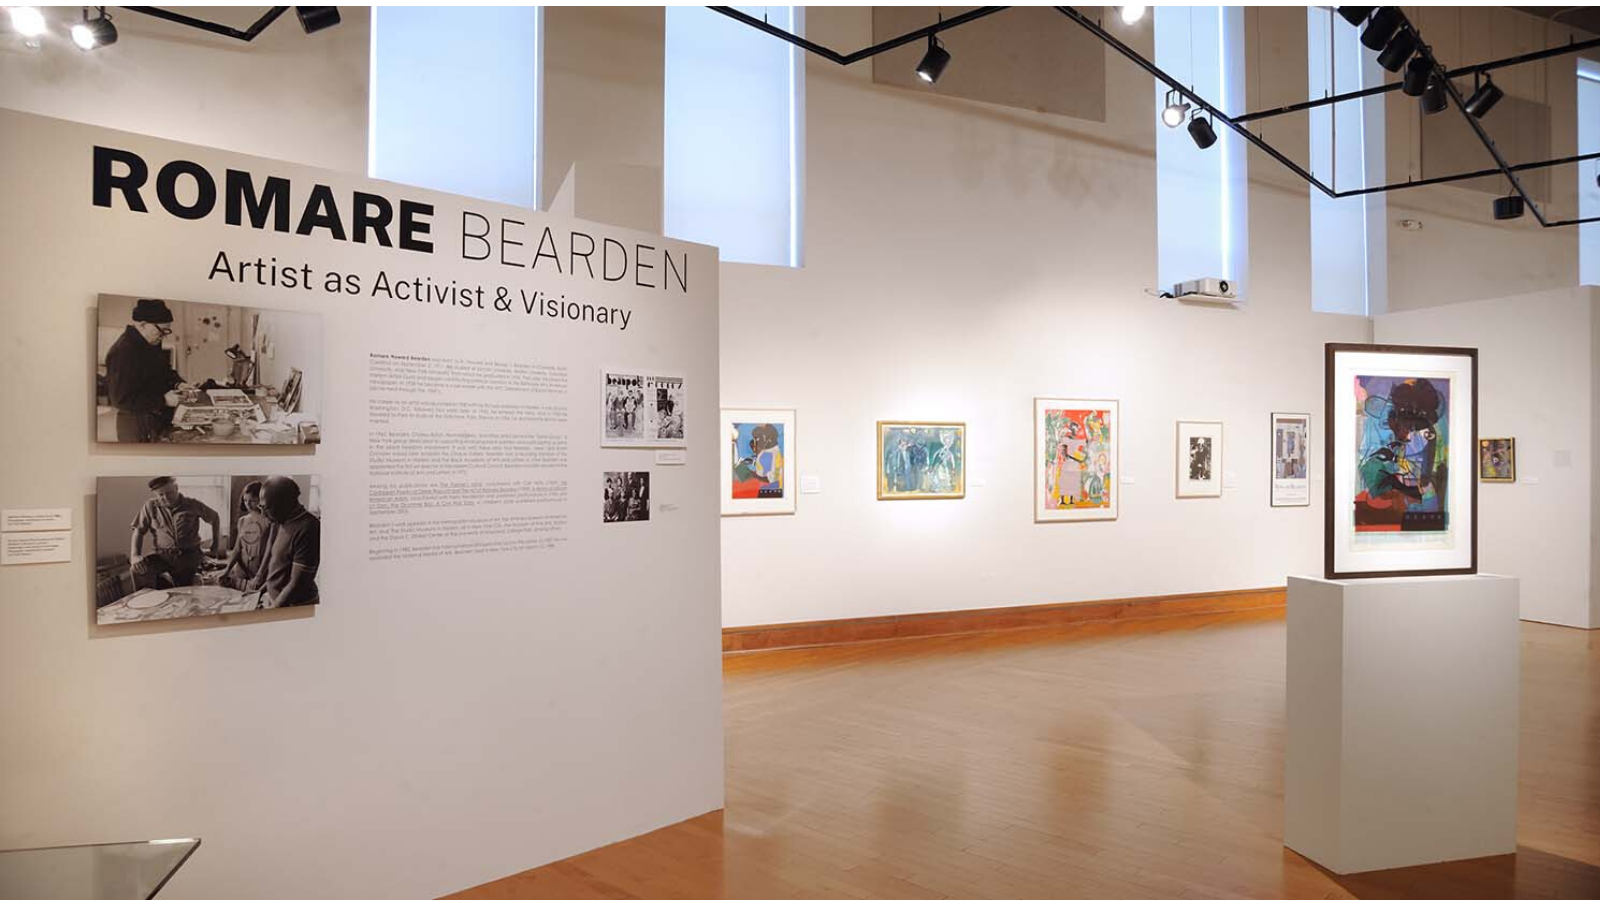 Romare Bearden: Artist as Activist & Visionary